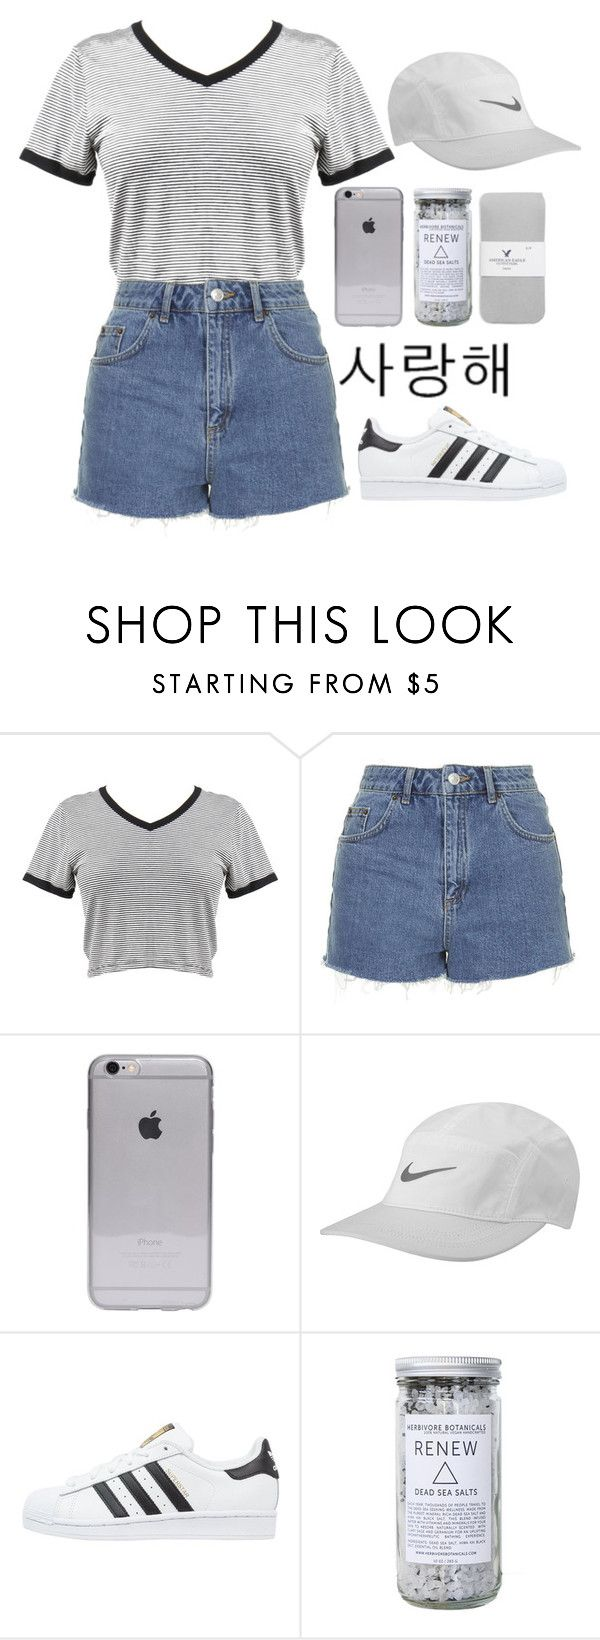 """; twenty something ;"" by serenitychills ❤ liked on Polyvore featuring Topshop, NIKE, adidas Originals, Herbivore Botanicals, American Eagle Outfitters, women's clothing, women's fashion, women, female and woman"